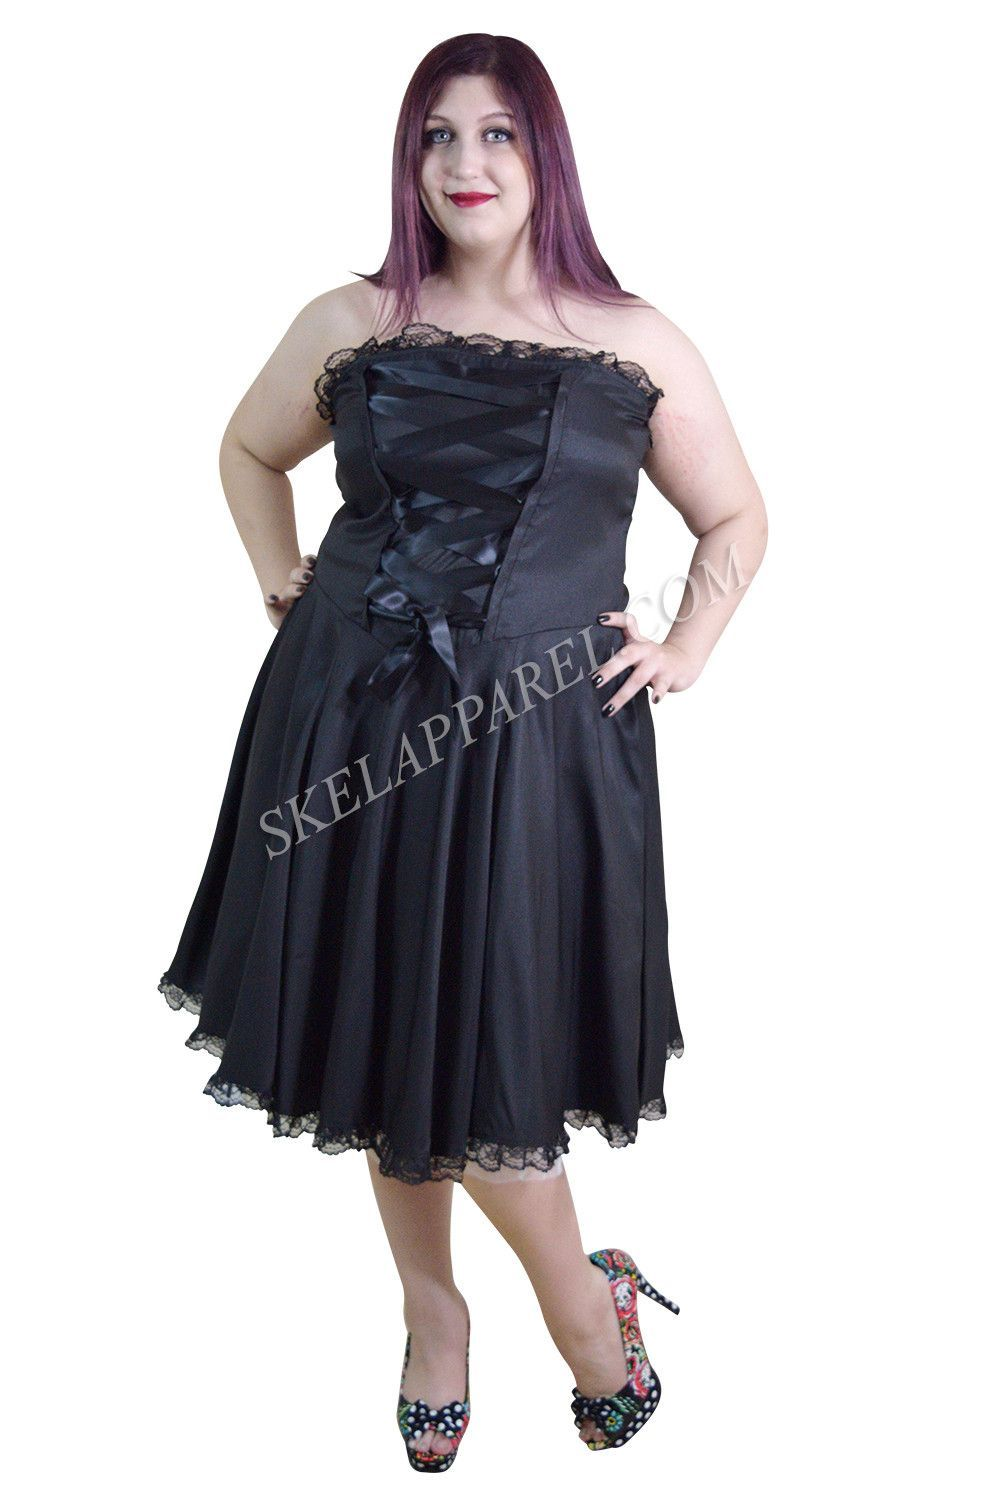 741272fafdf2 Plus Size Gothic Rockabilly Black Satin Corset Lace-up Dress Bridesmaid  Dresses Under 50,